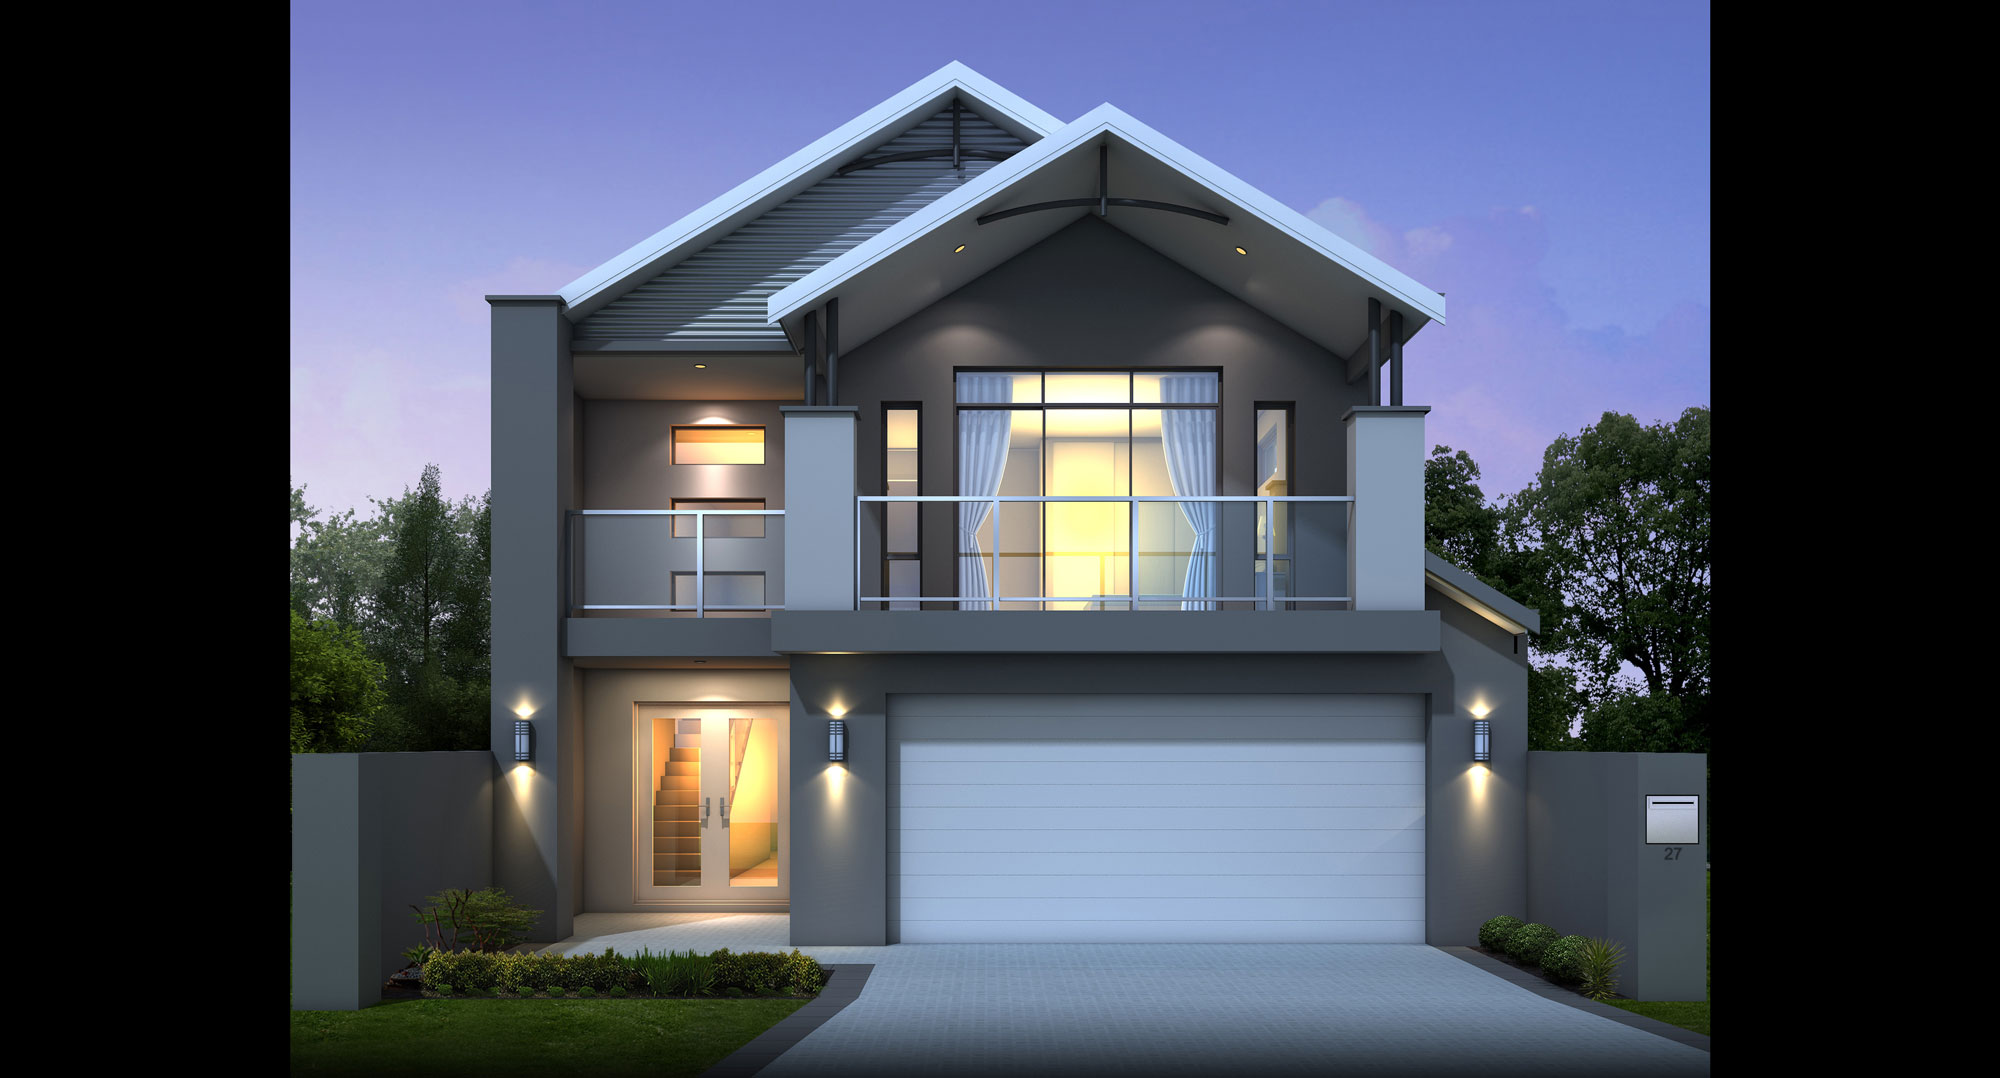 Narrow lot homes perth display houses designs great for House design plans for small lots